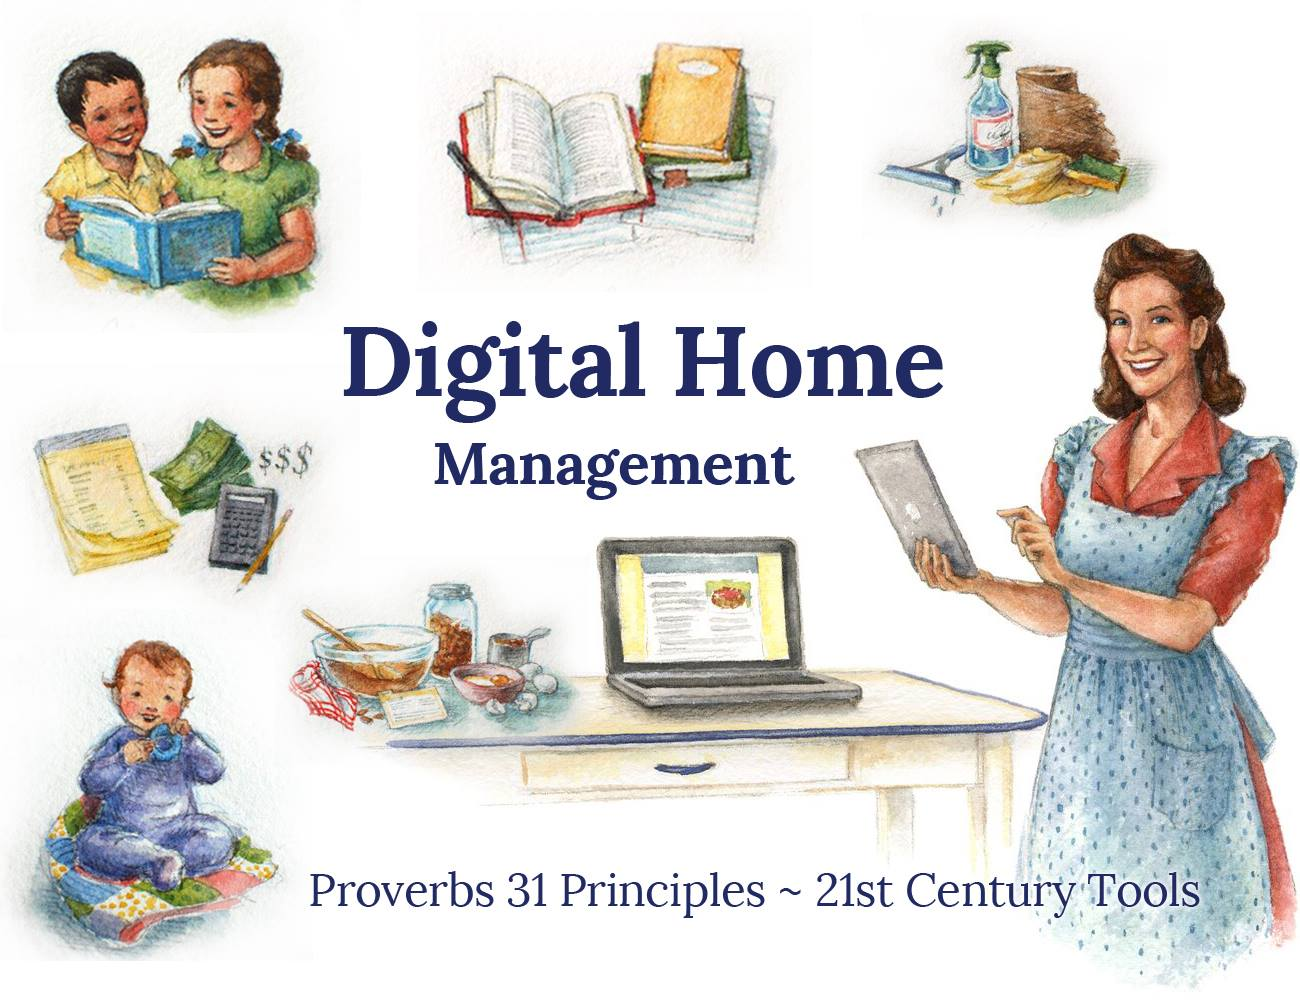 digitalhomemanagement